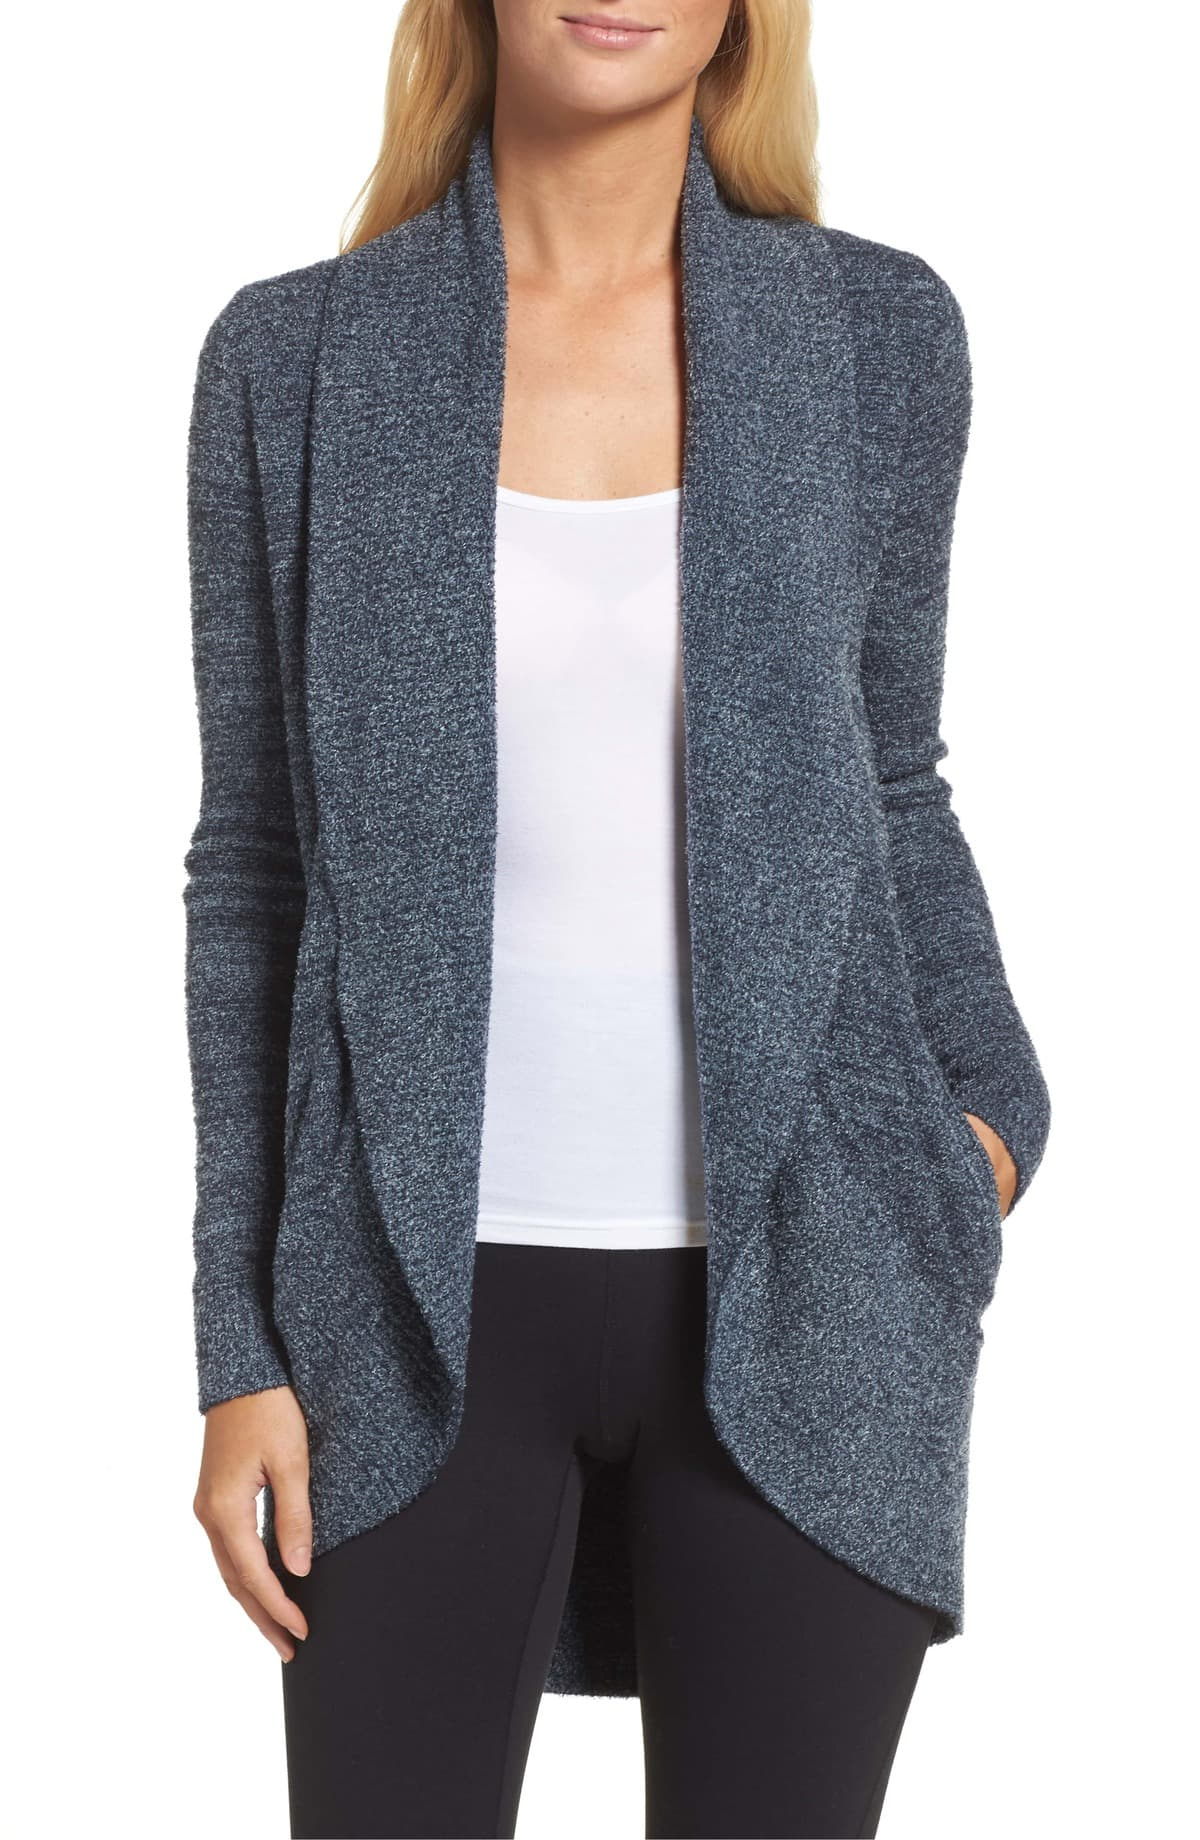 barefoot dreams cozylight circle cardigan review